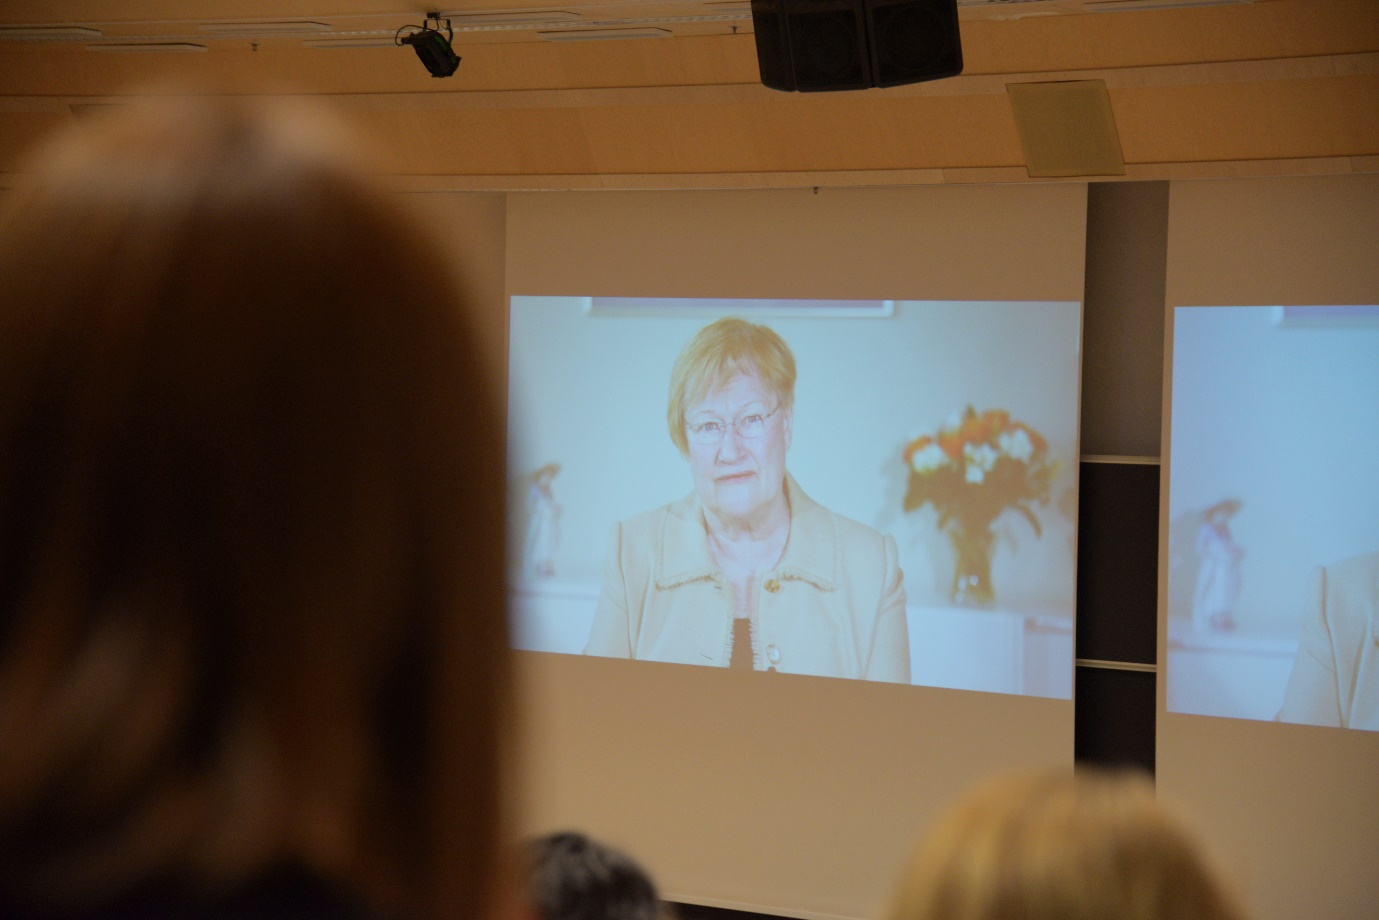 Video greeting from the Patron of the IPVI2017 Conference, President Tarja Halonen